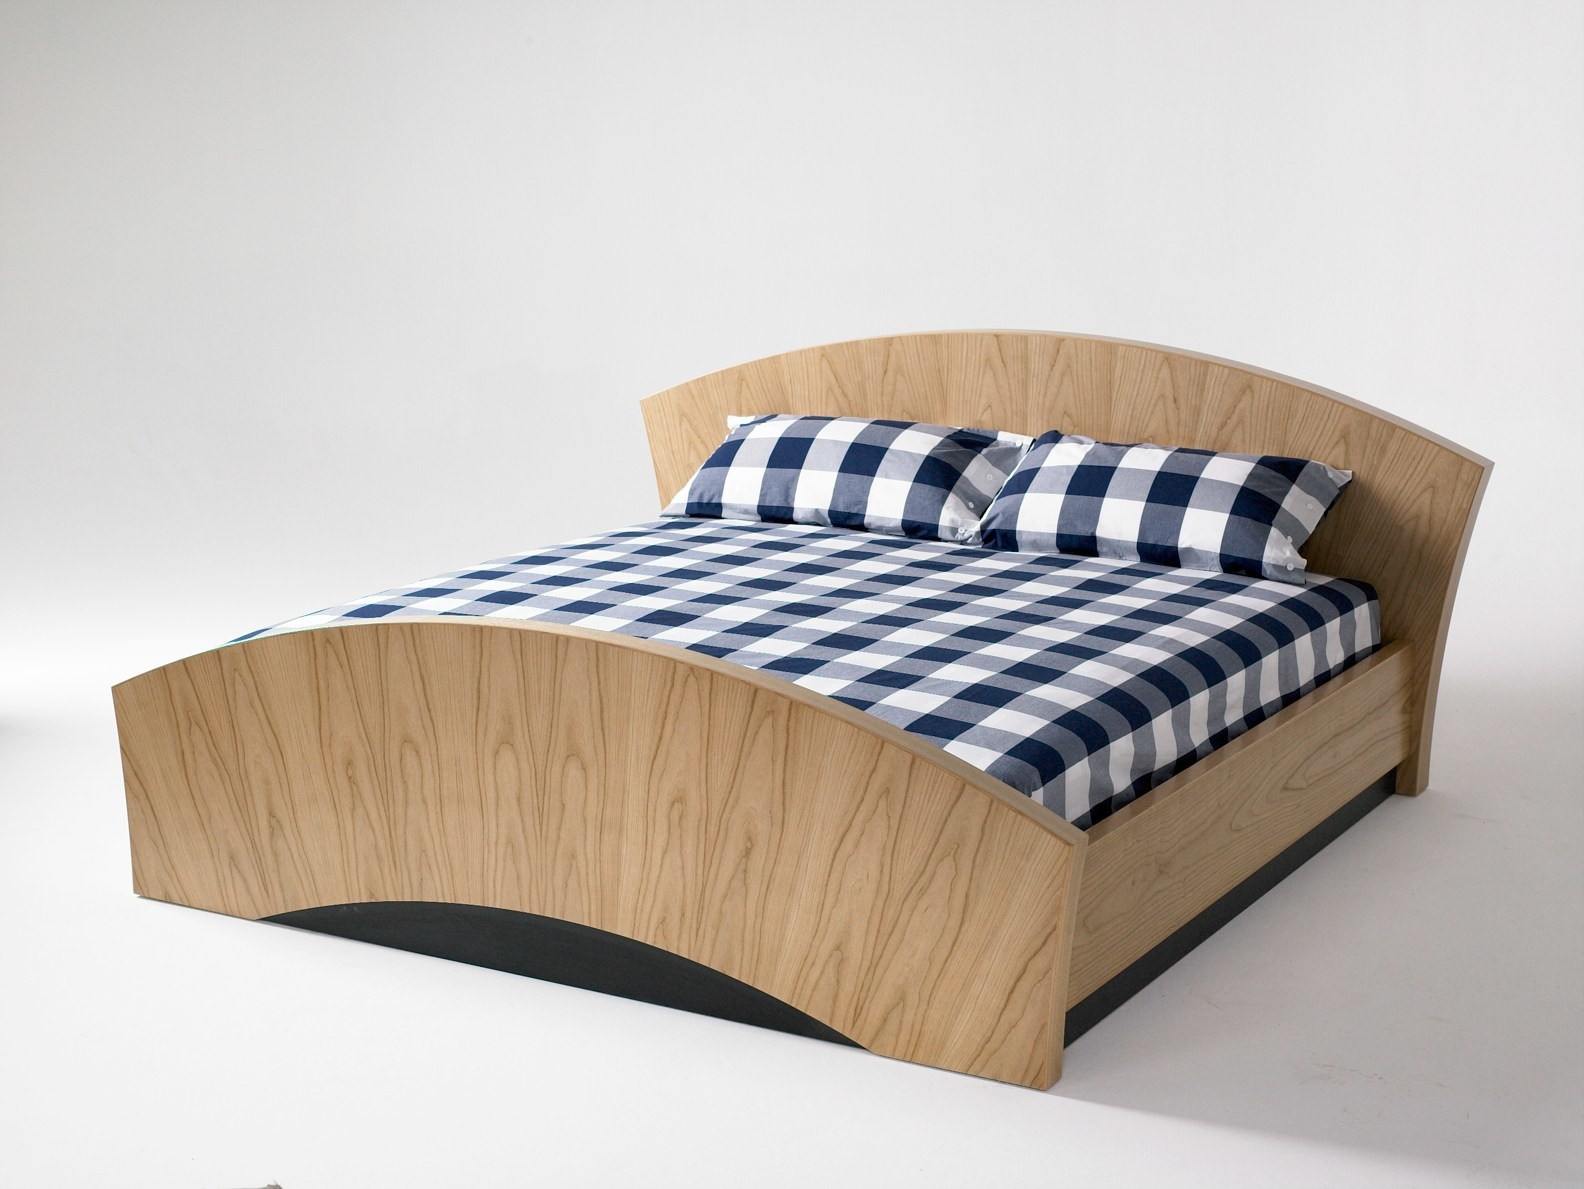 Bed designs 2012 4u wooden bed design for Bed dizain image